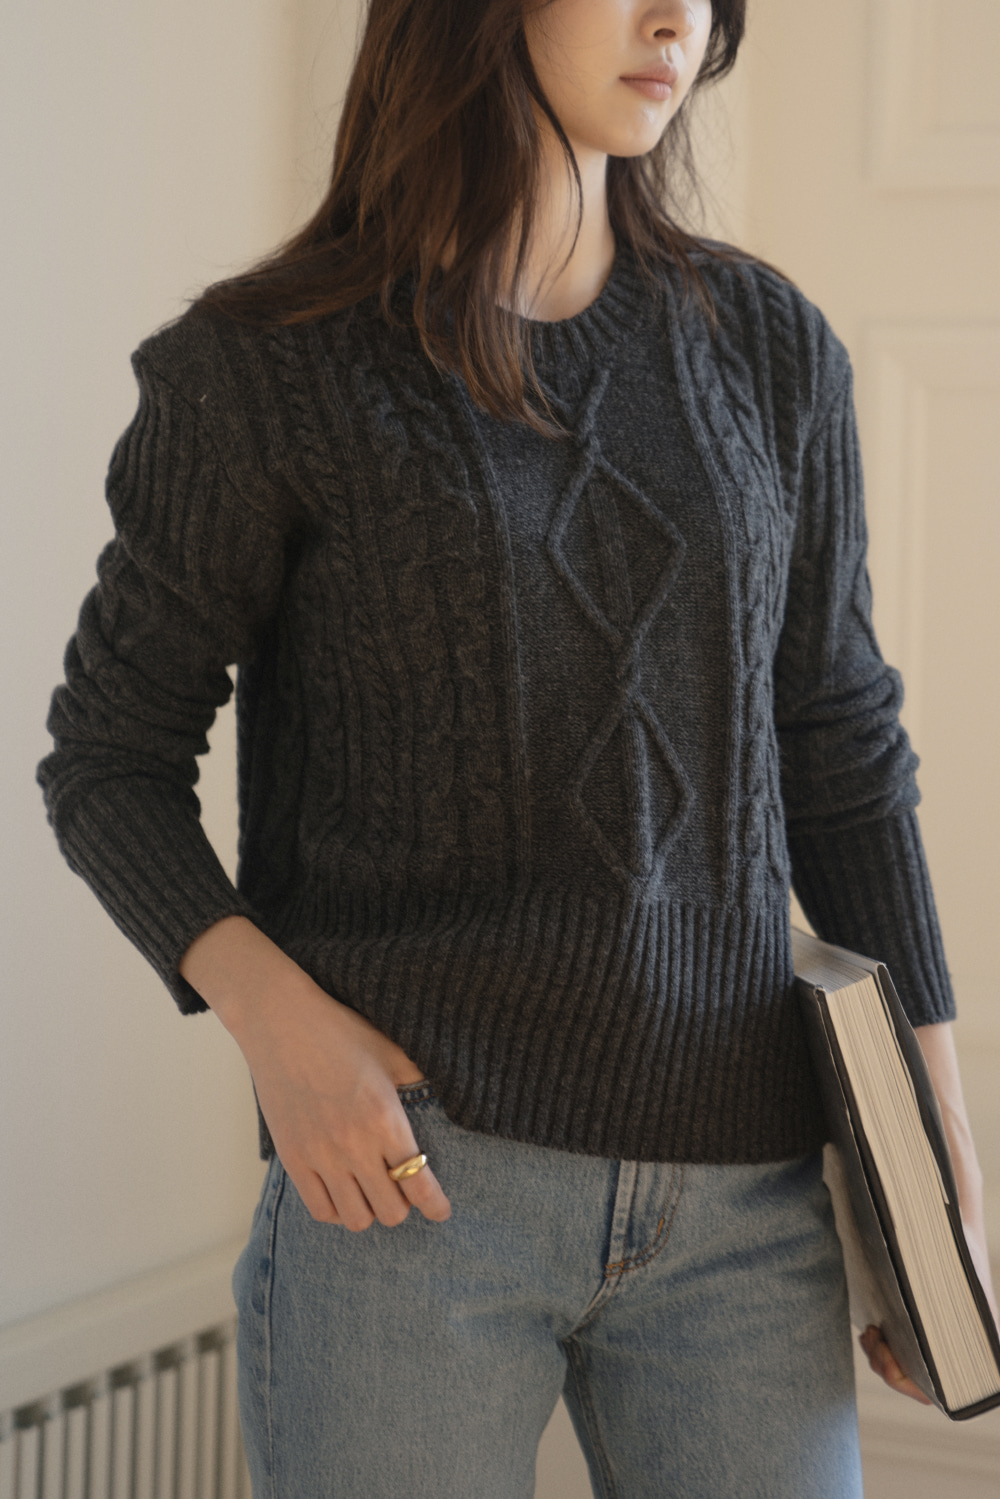 8599_Cable round knit [ New Season / 10% DC ] 28일 PM 6 마감